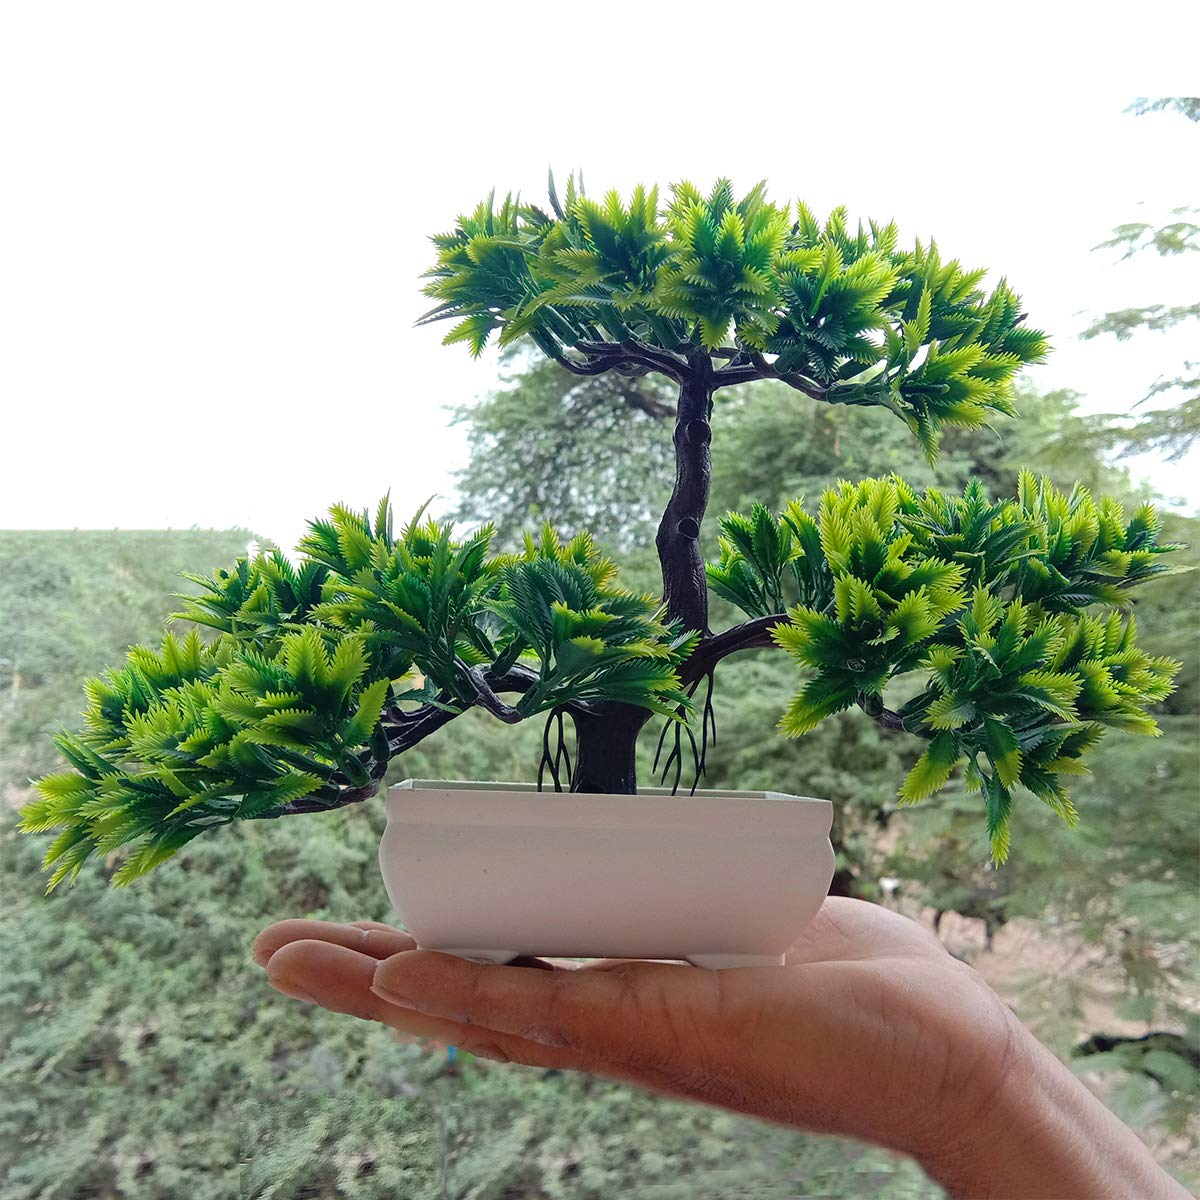 Reiki Crystal Products Beautiful Green Purple Artificial Bonsai Tree Plant With Pot Bonsai Tree For Indoor Buy Online In Grenada At Grenada Desertcart Com Productid 75811934